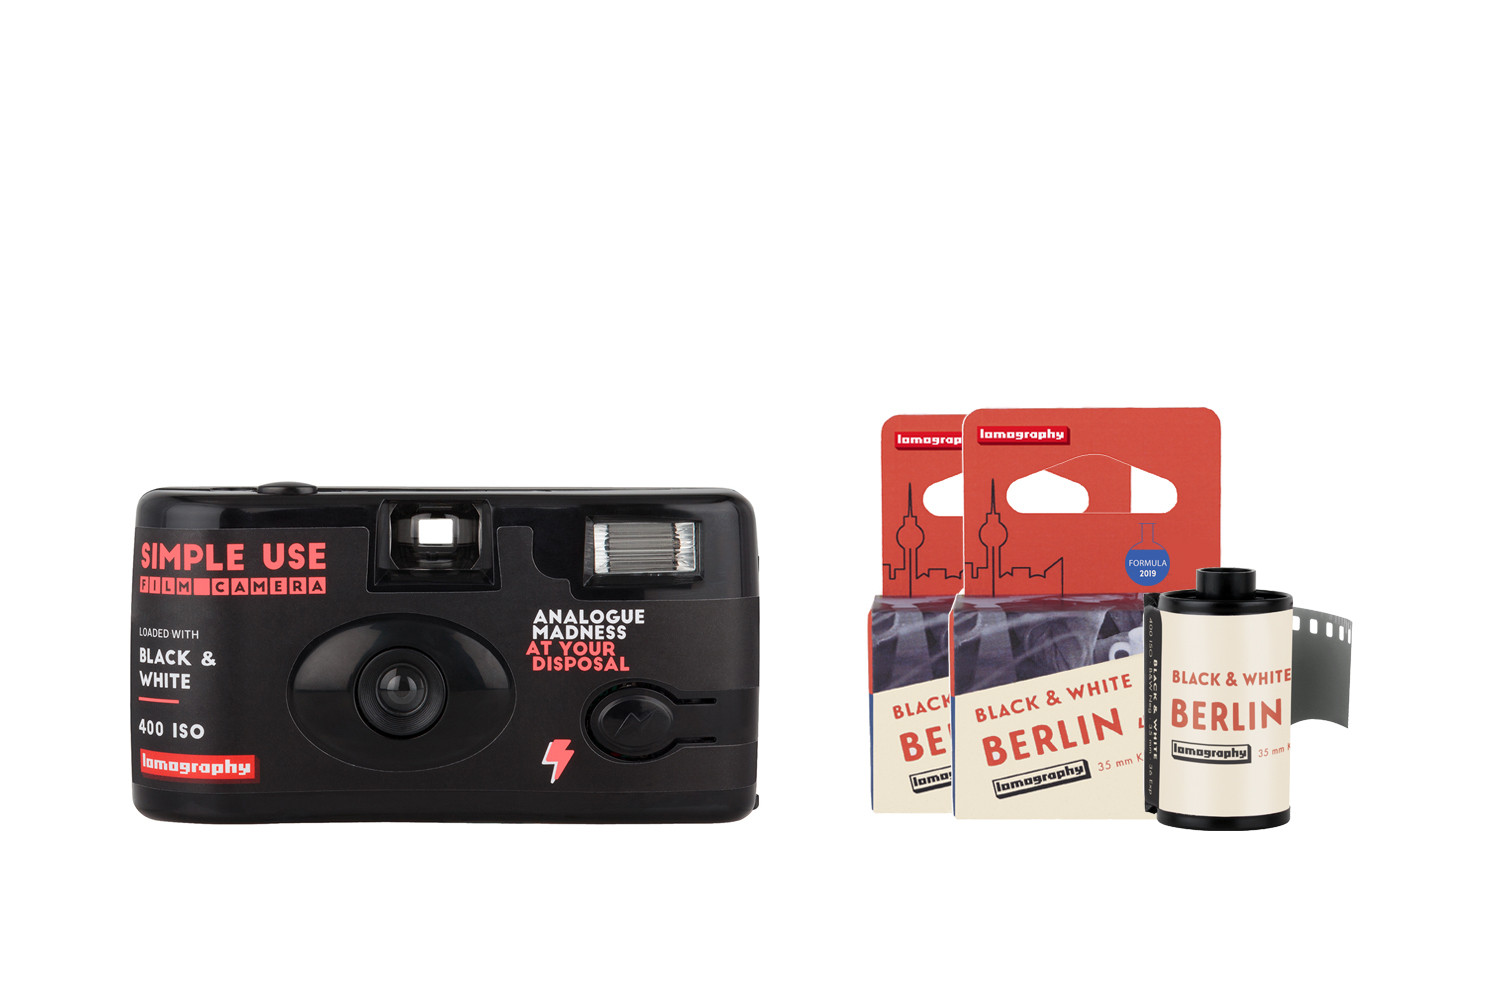 Simple Use Film Camera Reload Kit B&W